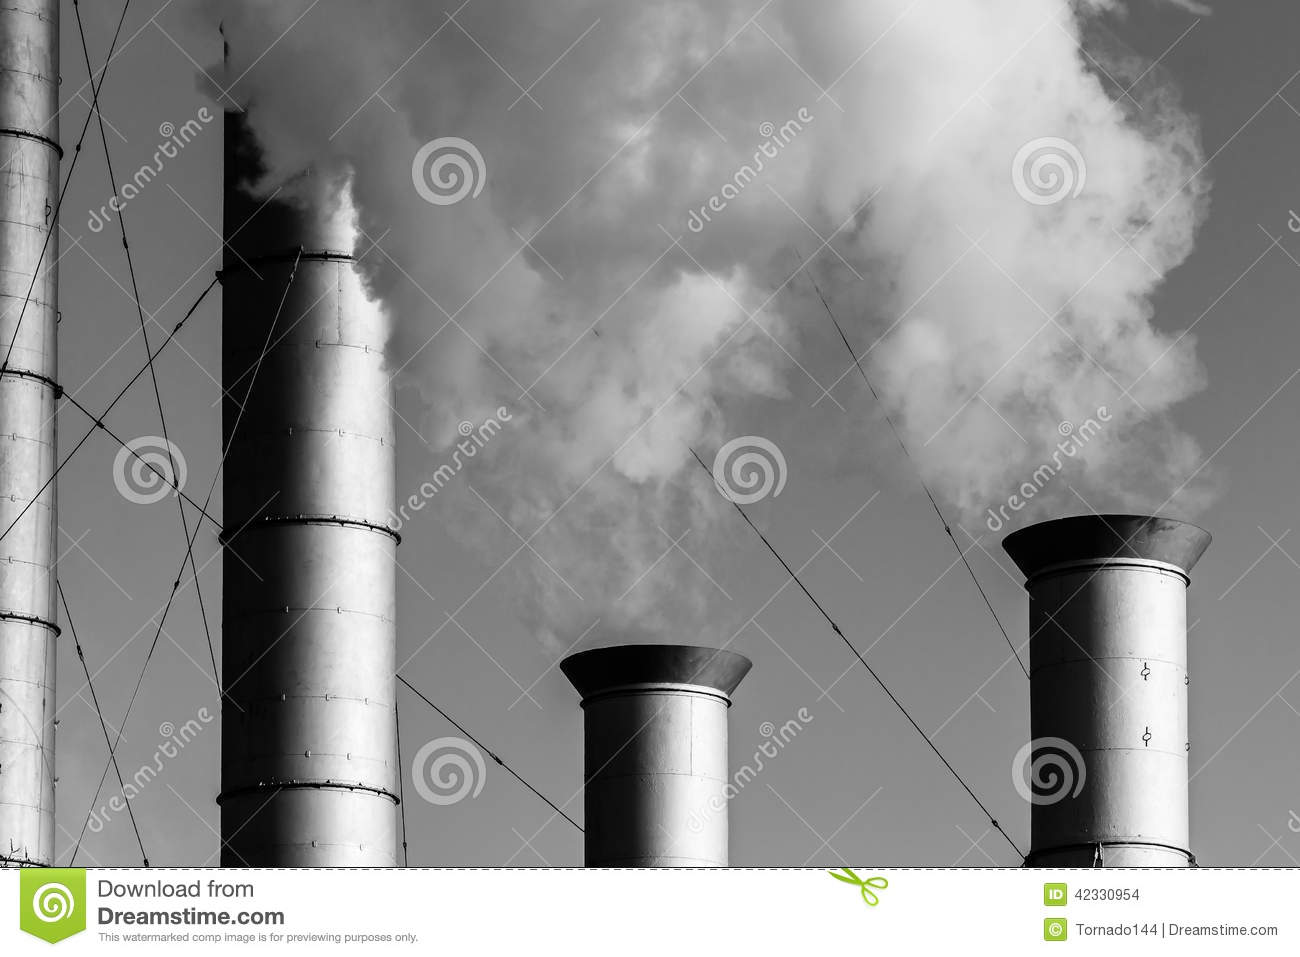 industrial chimneys and clouds of white smoke or vapor stock photo image of blue dioxide. Black Bedroom Furniture Sets. Home Design Ideas